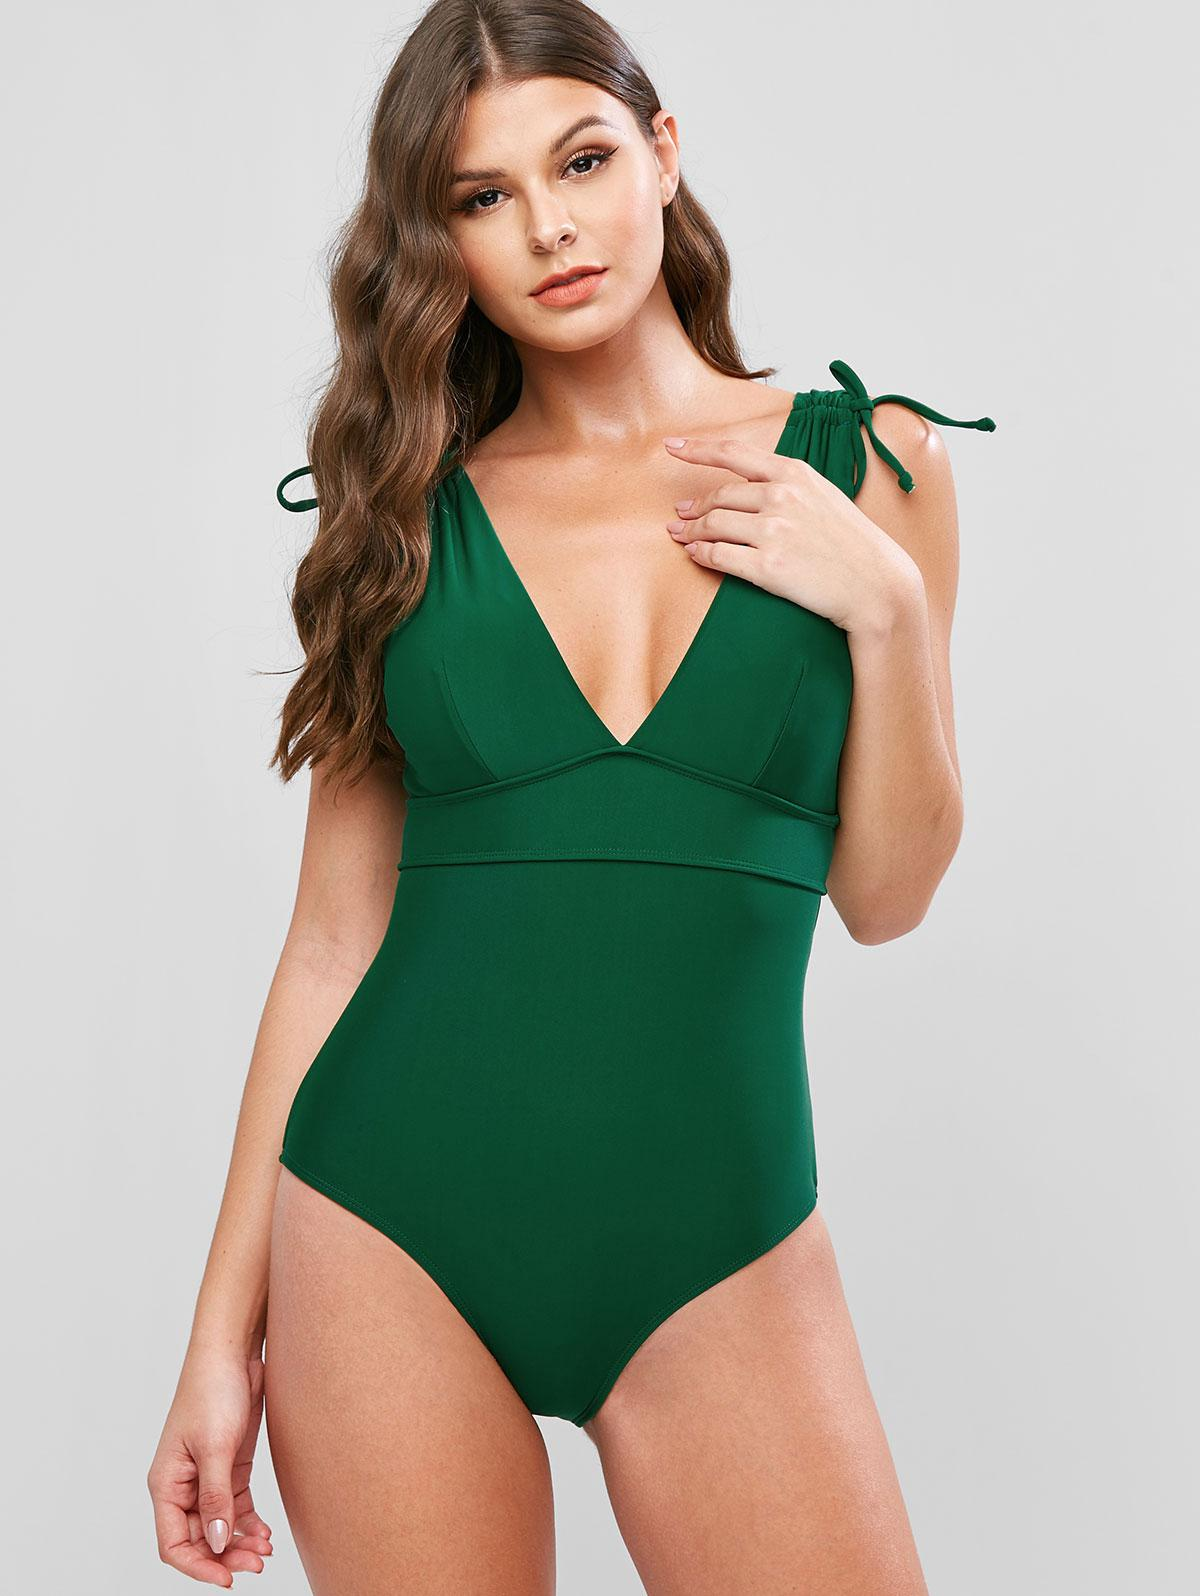 Zaful coupon: ZAFUL Plunge Cinched Lace Up Backless One-piece Swimsuit